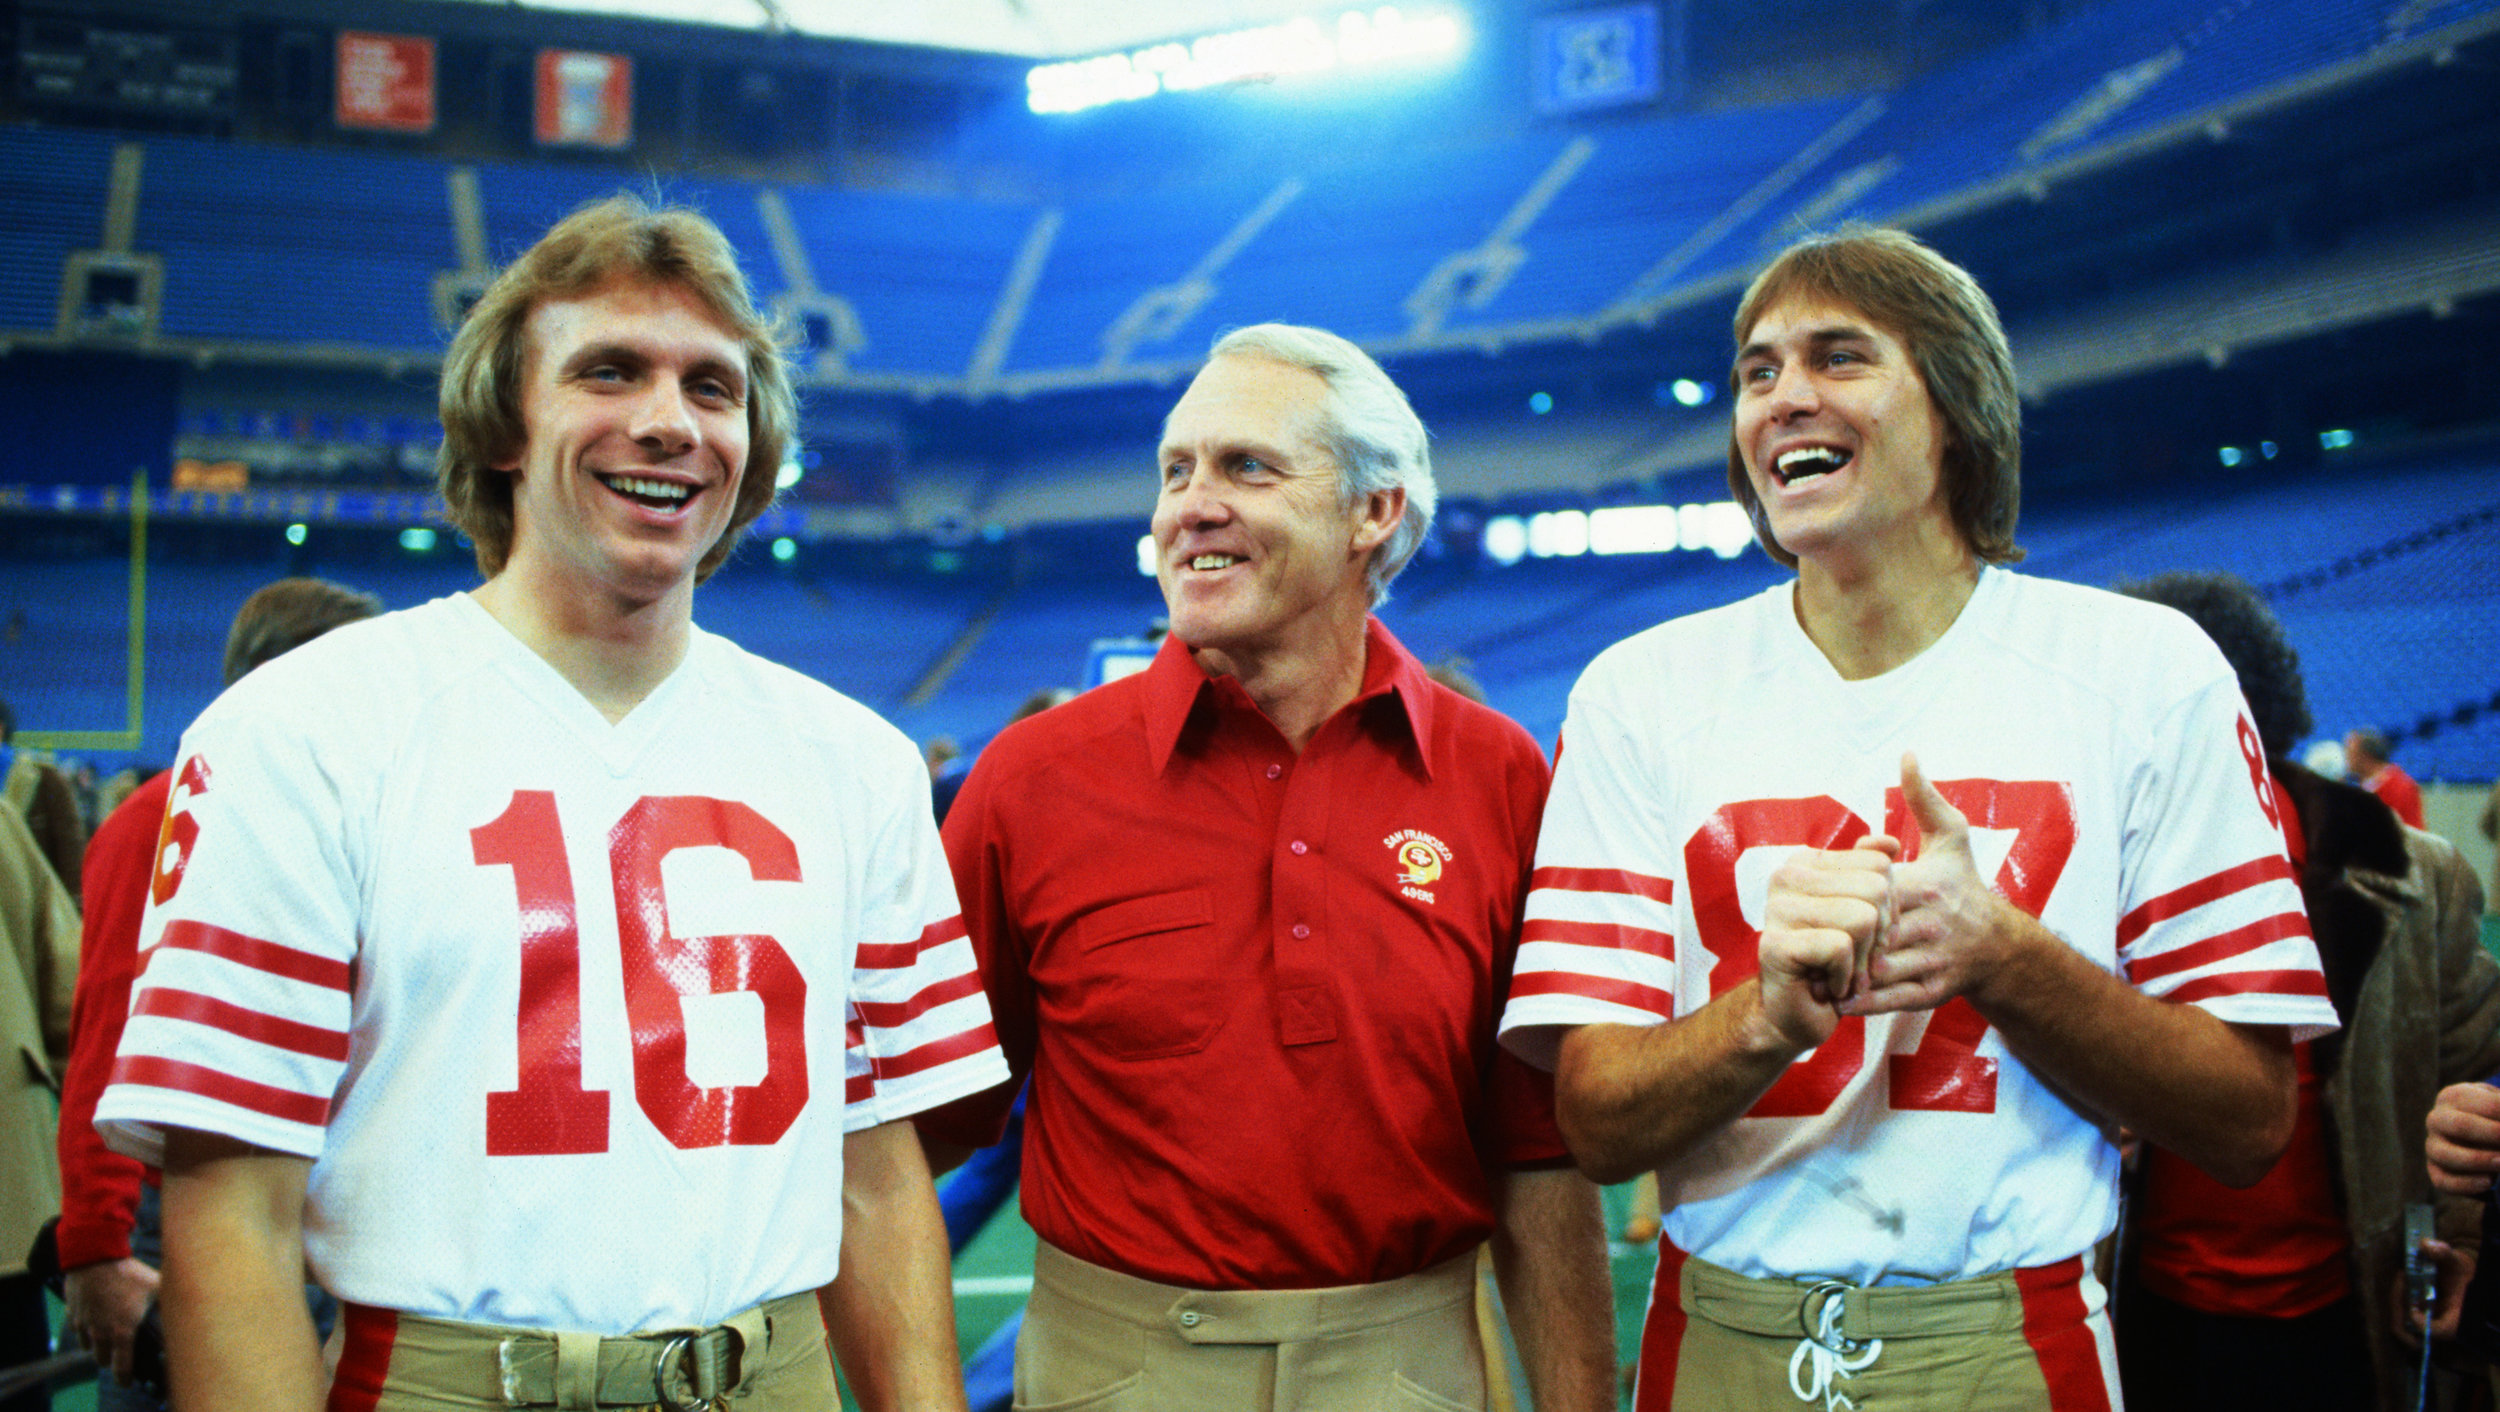 Joe Montana (left), Bill Walsh (center) and Dwight Clark (right) at the 1982 Super Bowl